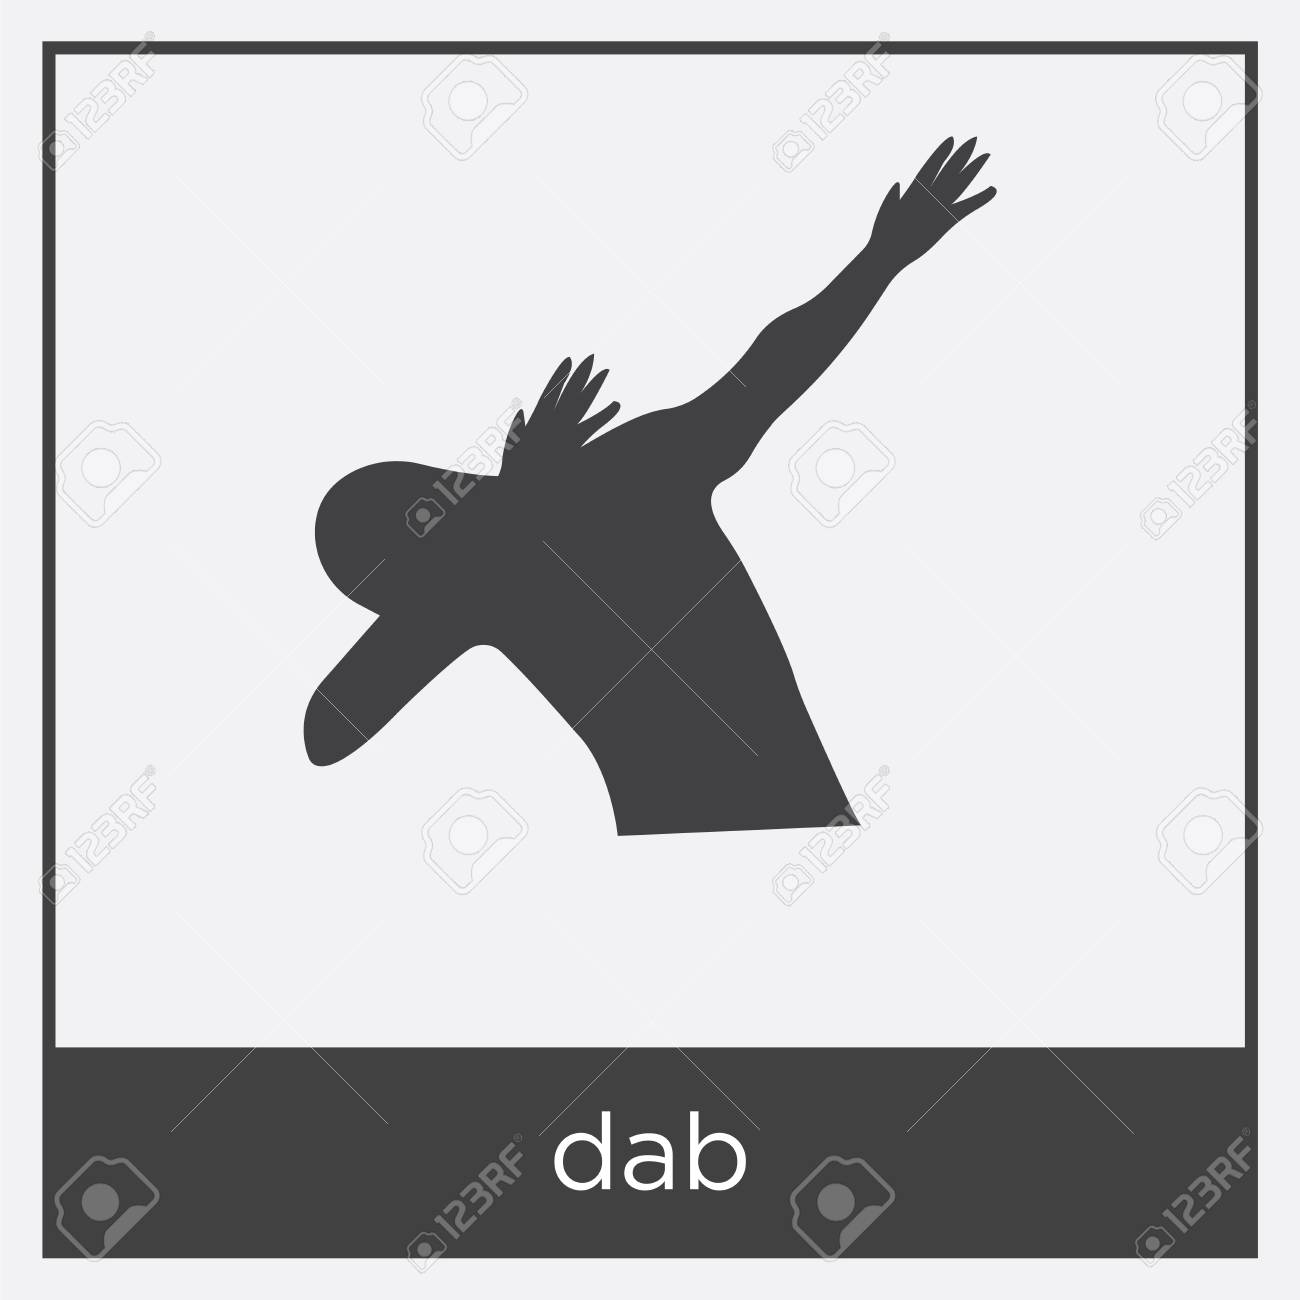 dab icon isolated on